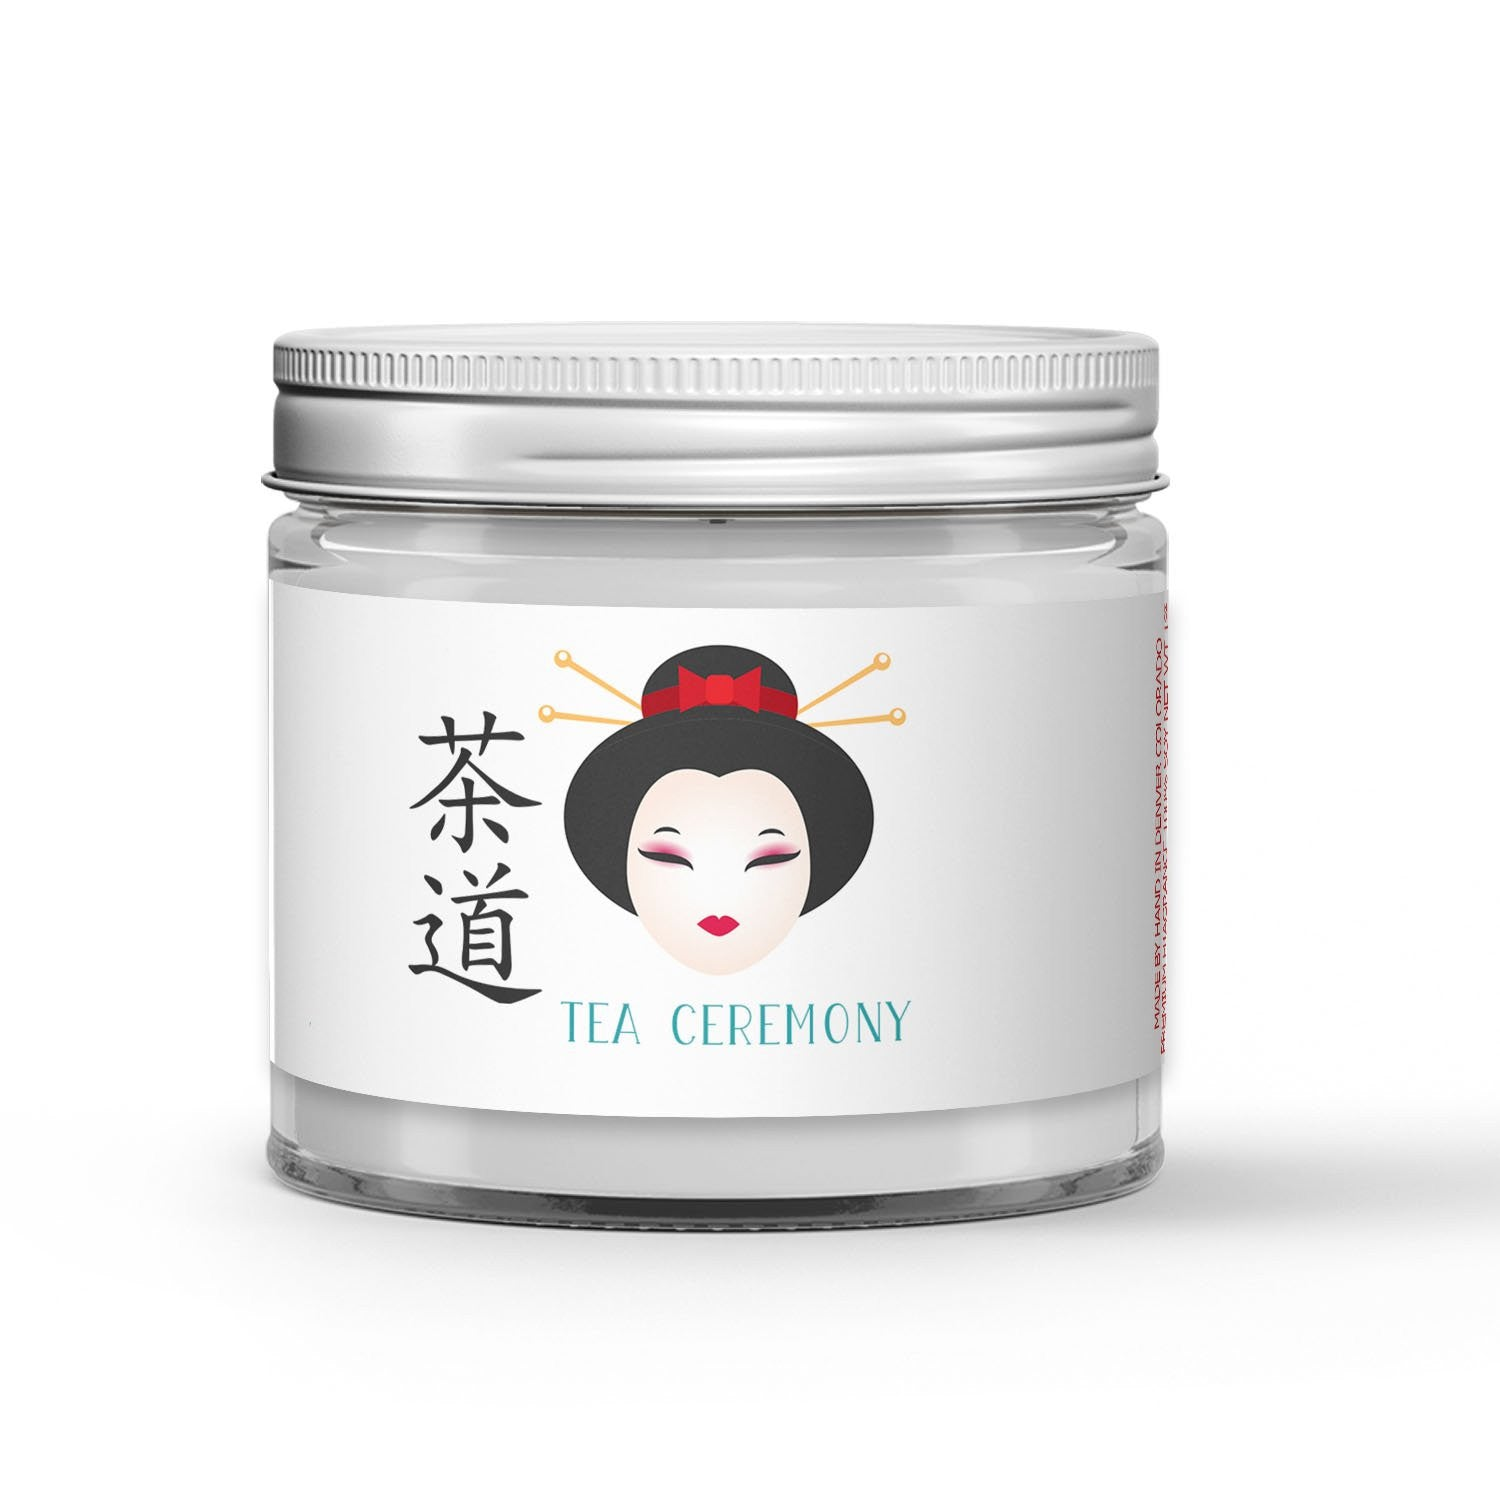 Tea Ceremony Candle - Matcha Green Tea - White Musk - 1oz Adorable Size Candle® - Dio Candle Company